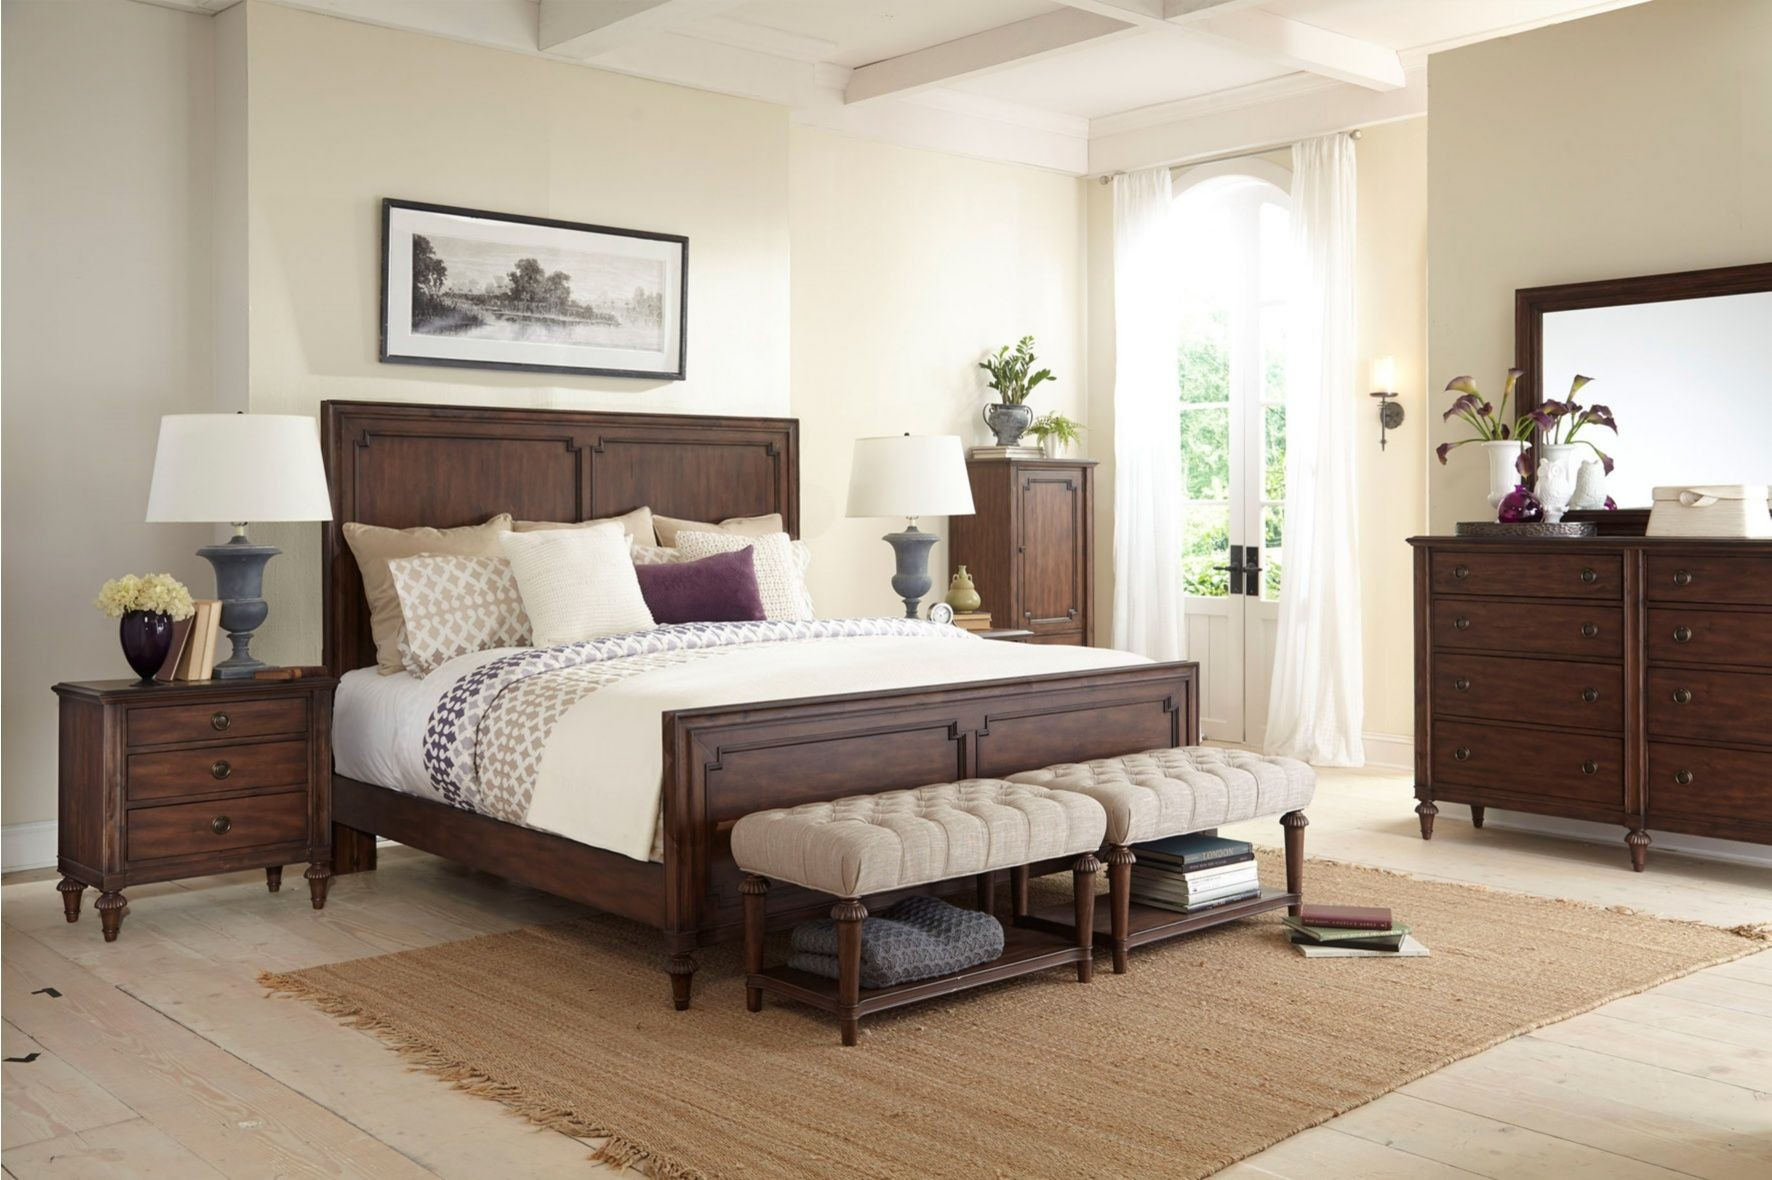 cranford queen panel bed from broyhill 4800 256 257 450 coleman furniture. Black Bedroom Furniture Sets. Home Design Ideas